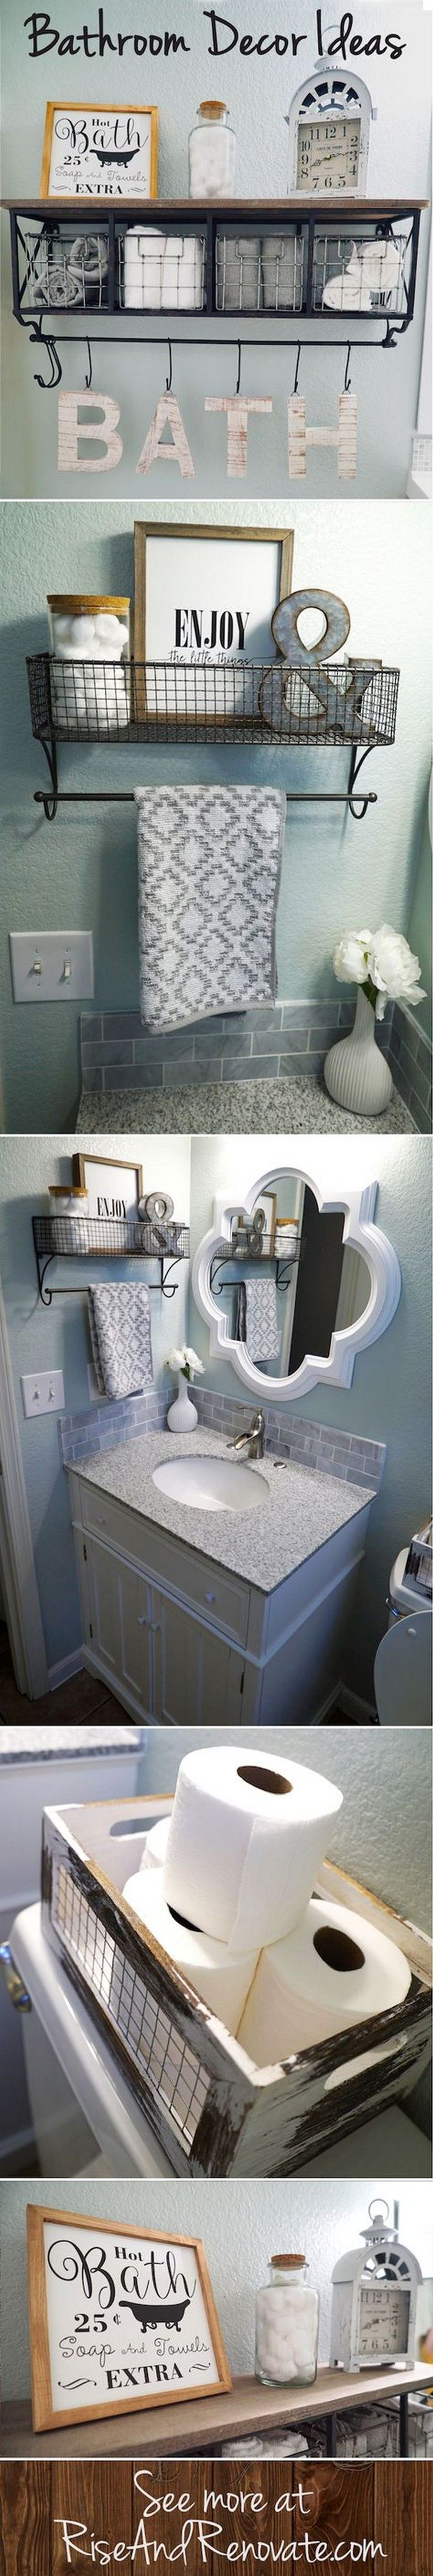 Inspiring 50+ Best Bathroom Inspiration https://ideacoration.co/2017/07/16/50-best-bathroom-inspiration/ Bathroom vanities arrive in cost-effective rates, like glass shower cabinets and stainless steel hardware. In regards to buying the most suitable vanity for your bathroom